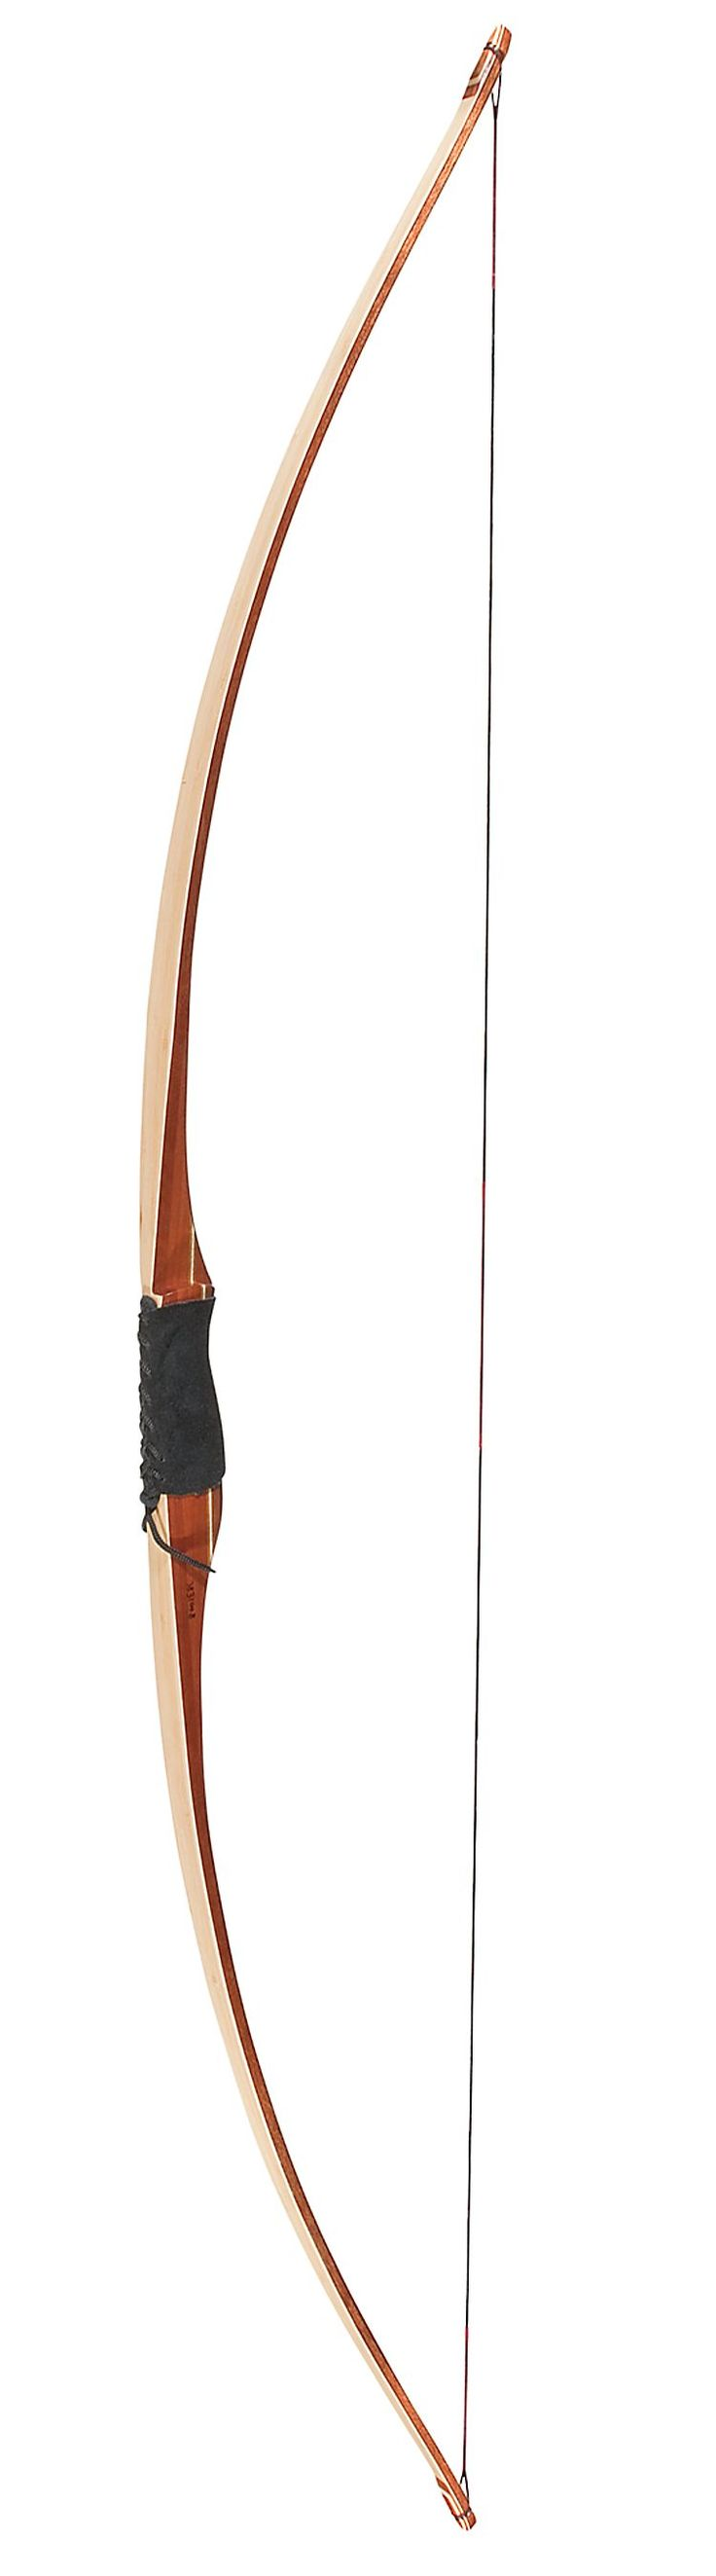 American flatbow as Howard Hill used. Not period.  English bows (and Viking bows) were D shaped in cross section.